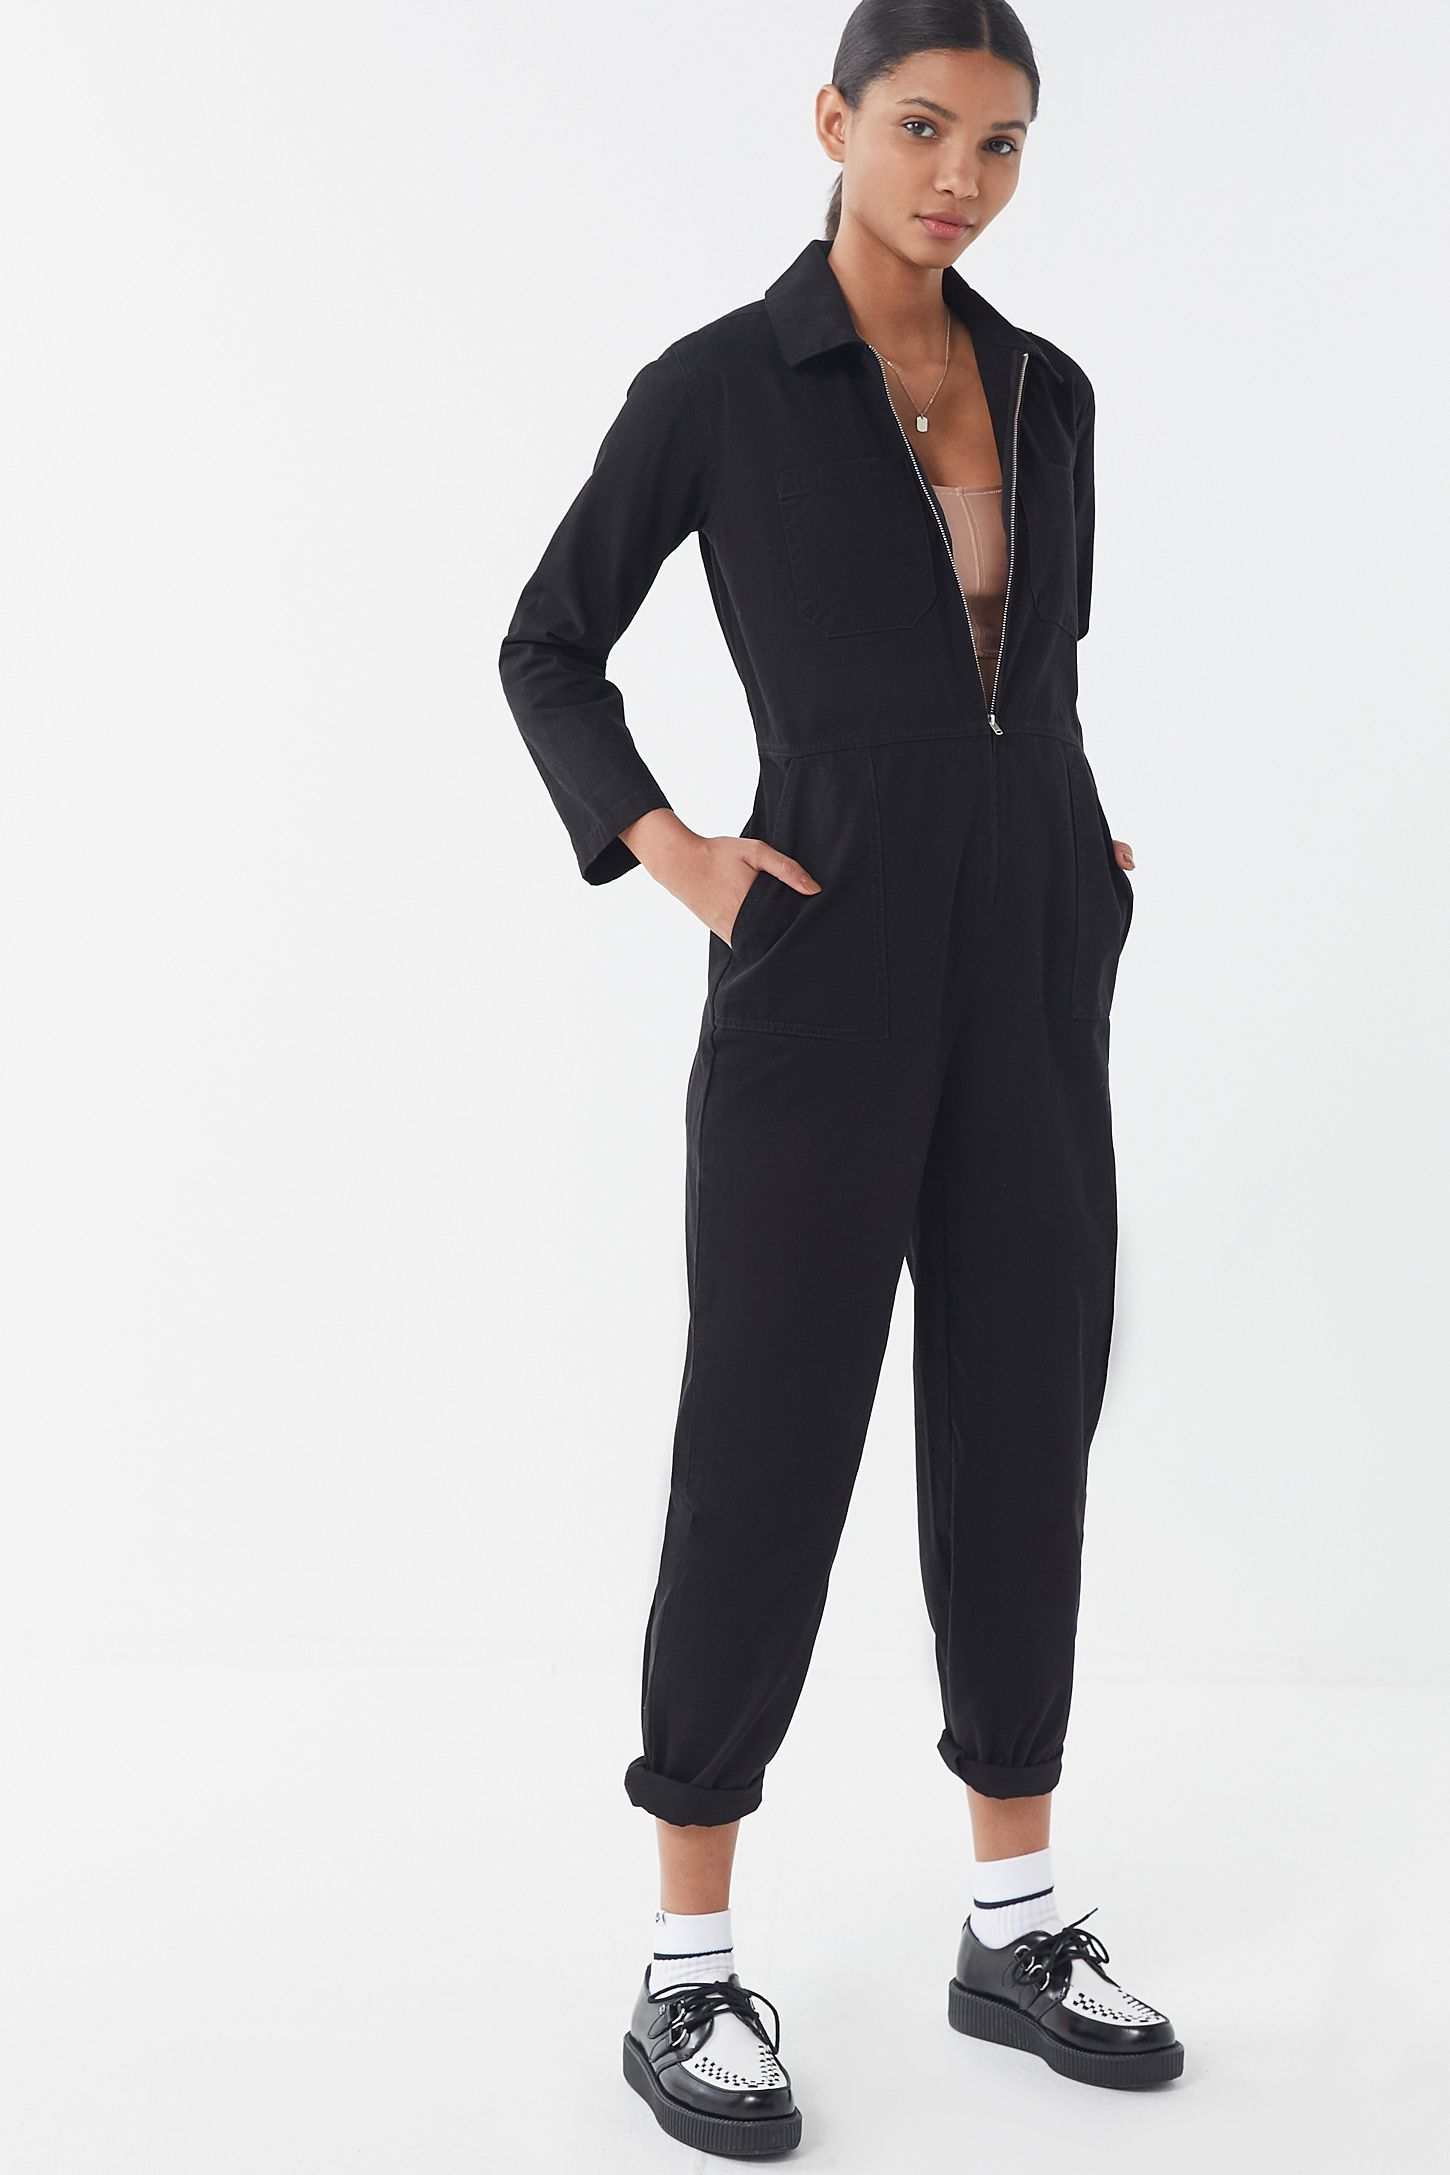 07191c72a33 Slide View  1  UO Rosie Utility Jumpsuit